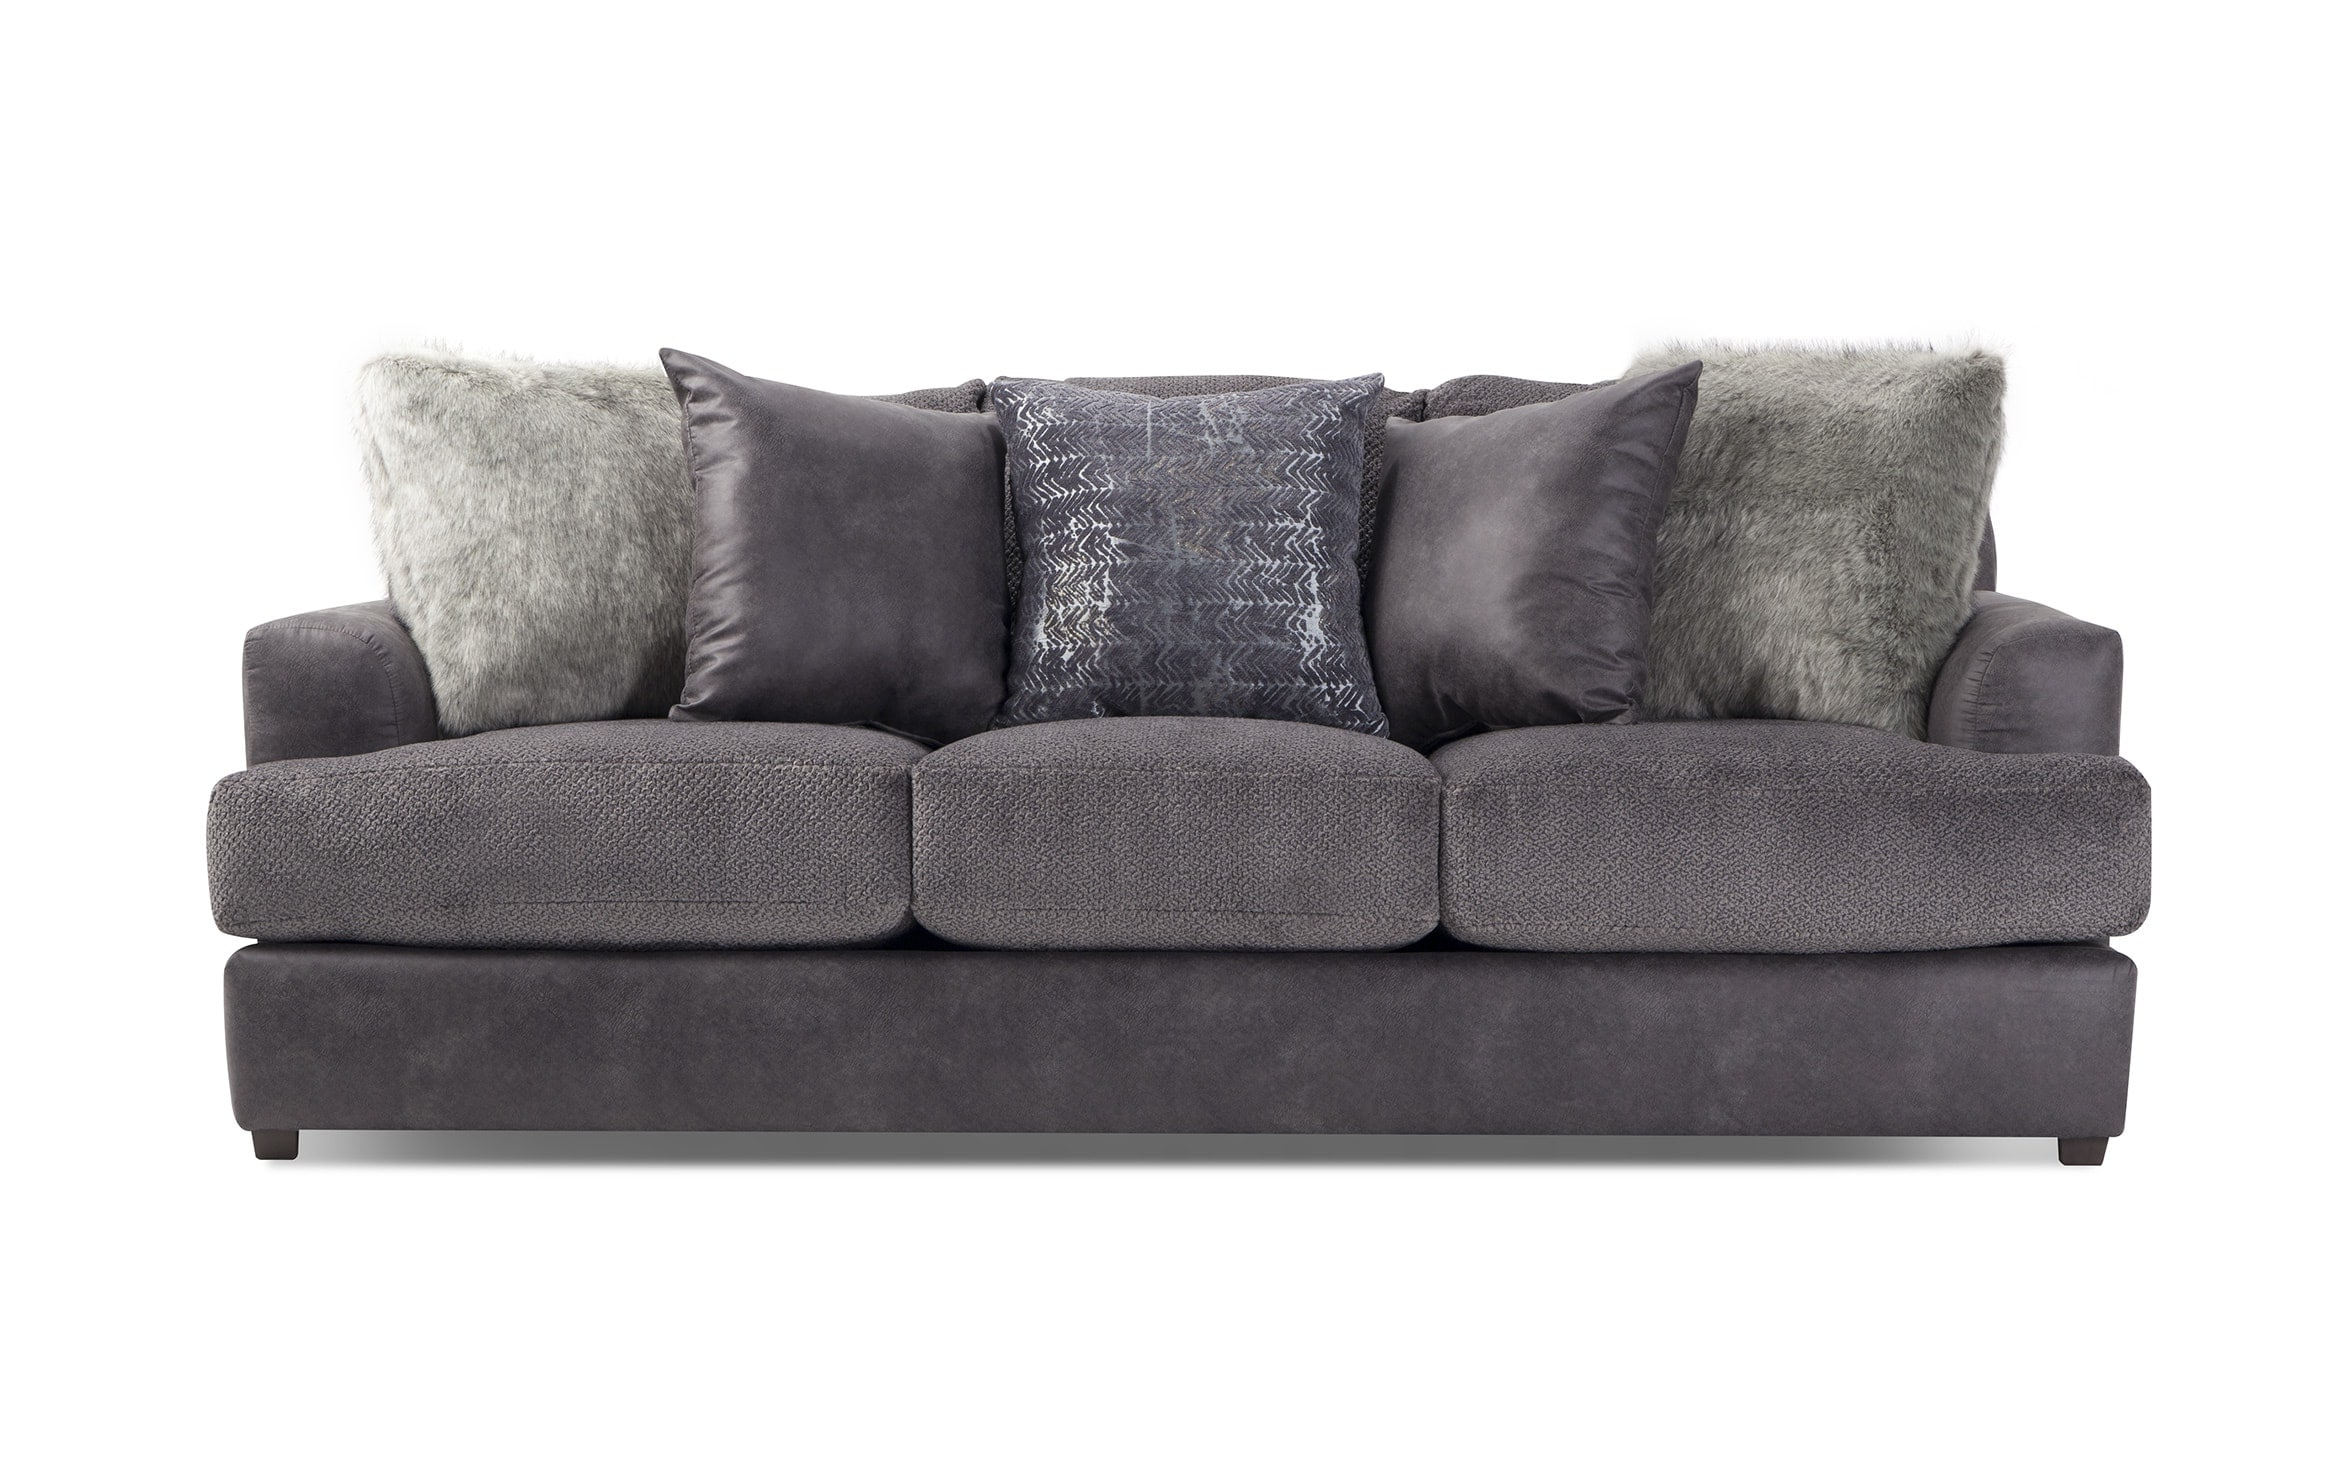 Preferred Bobs Sofa Playscape Denim Left Arm Facing Sectional Bobs In Dream Navy 3 Piece Modular Sofas (View 6 of 20)